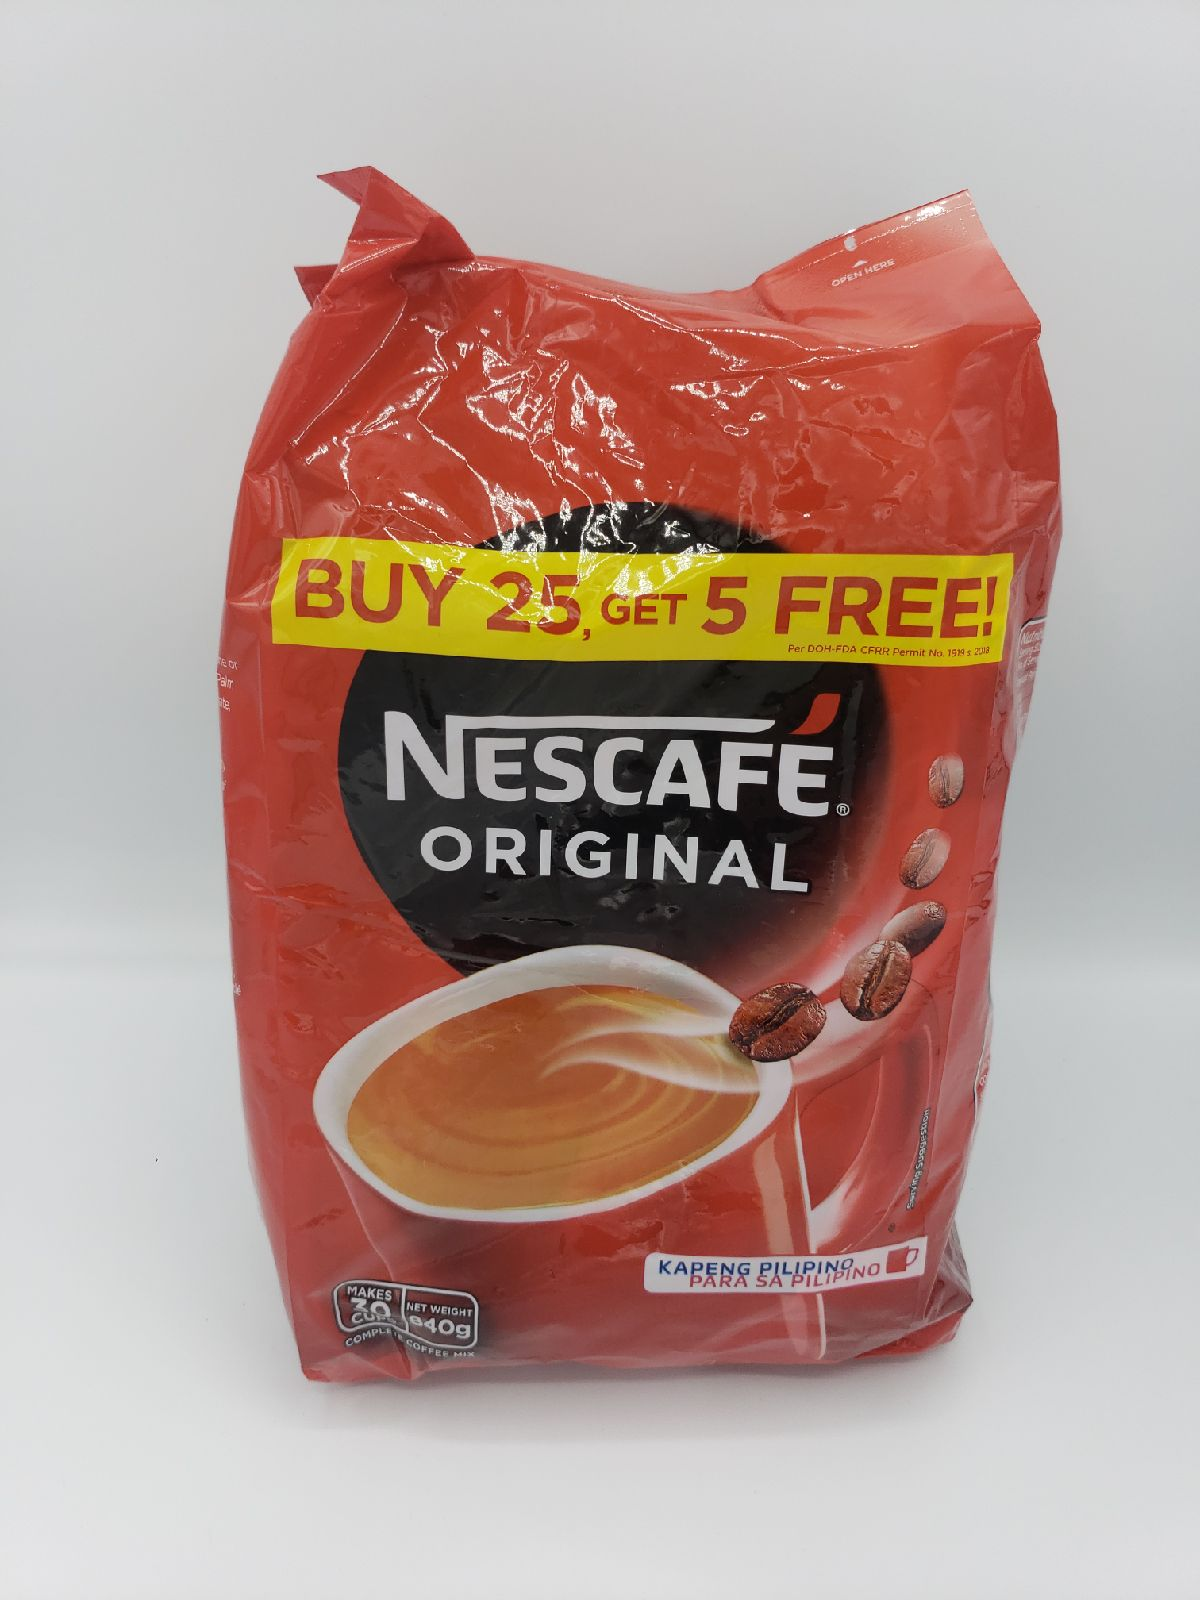 NESCAFE 3 IN 1 COFFEE FROM THE PHILIPPIN